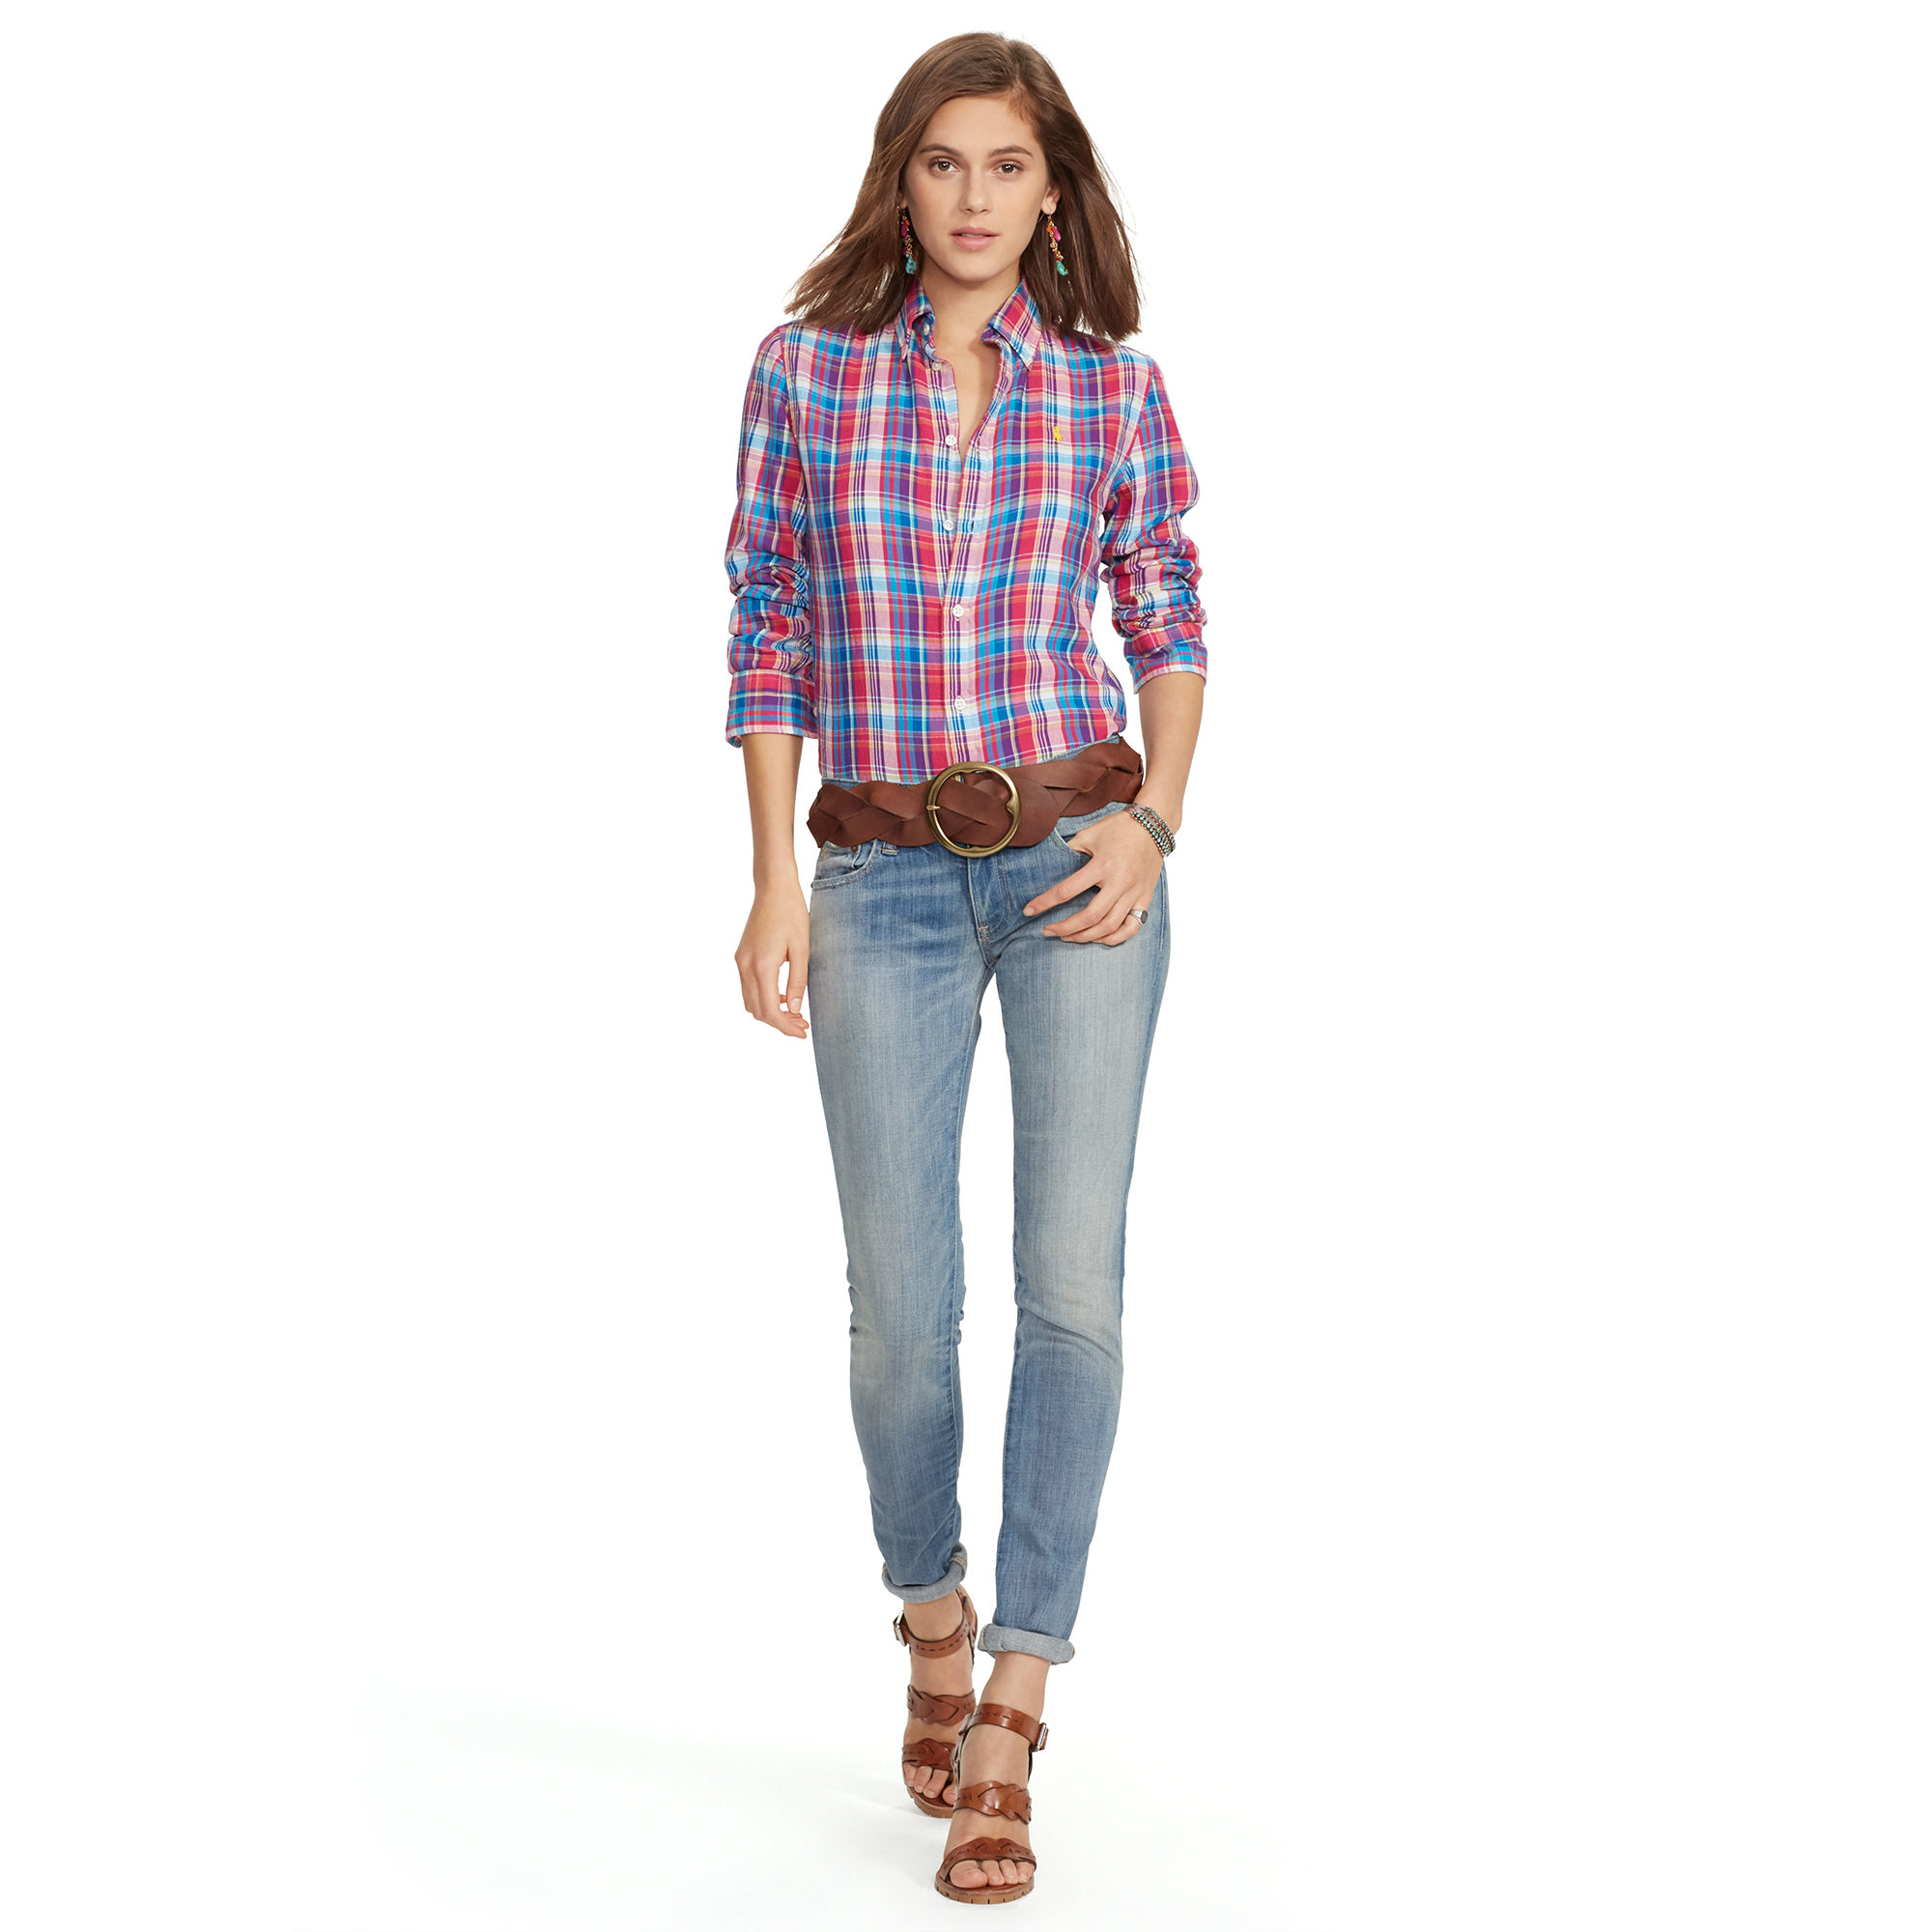 Polo Ralph Lauren Relaxed-fit Cotton Plaid Shirt in Pink - Lyst bb1678c1a51